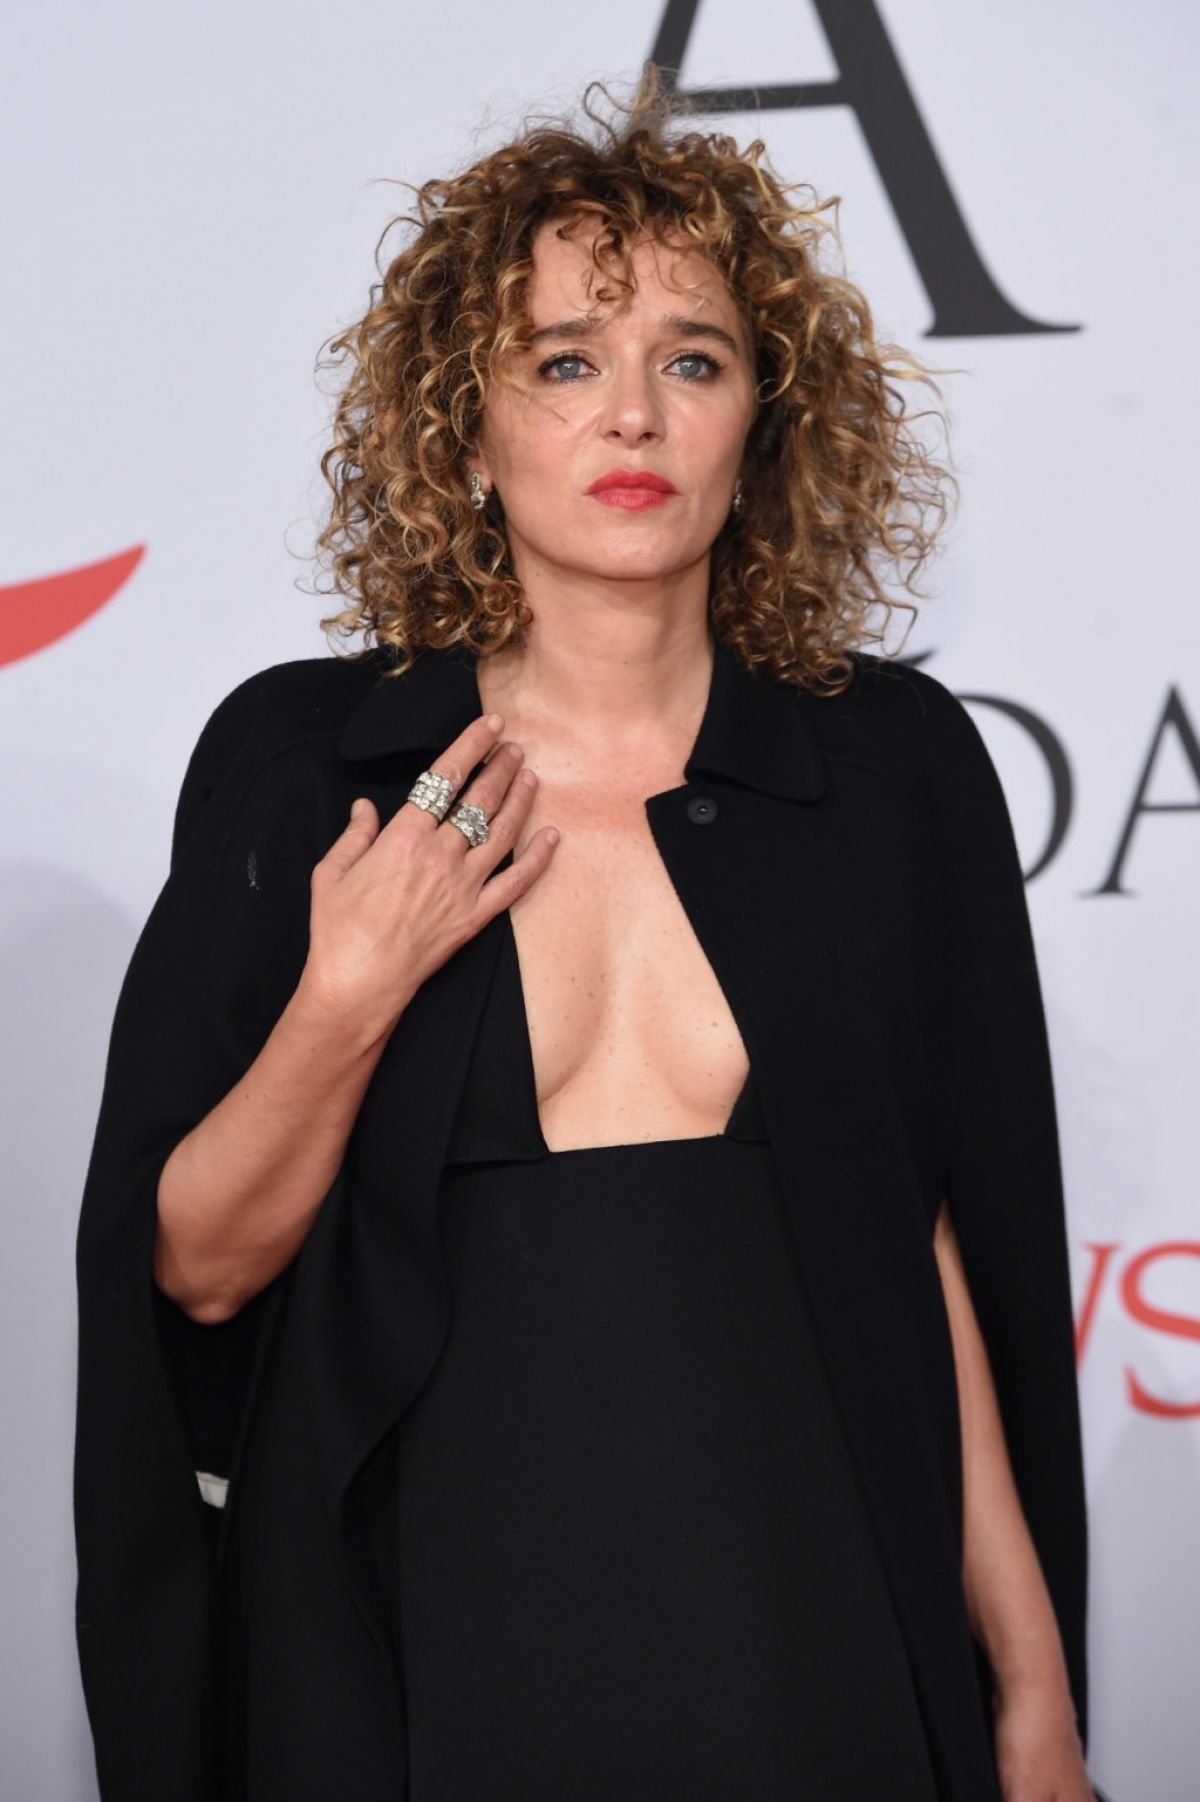 valeria golino - photo #19